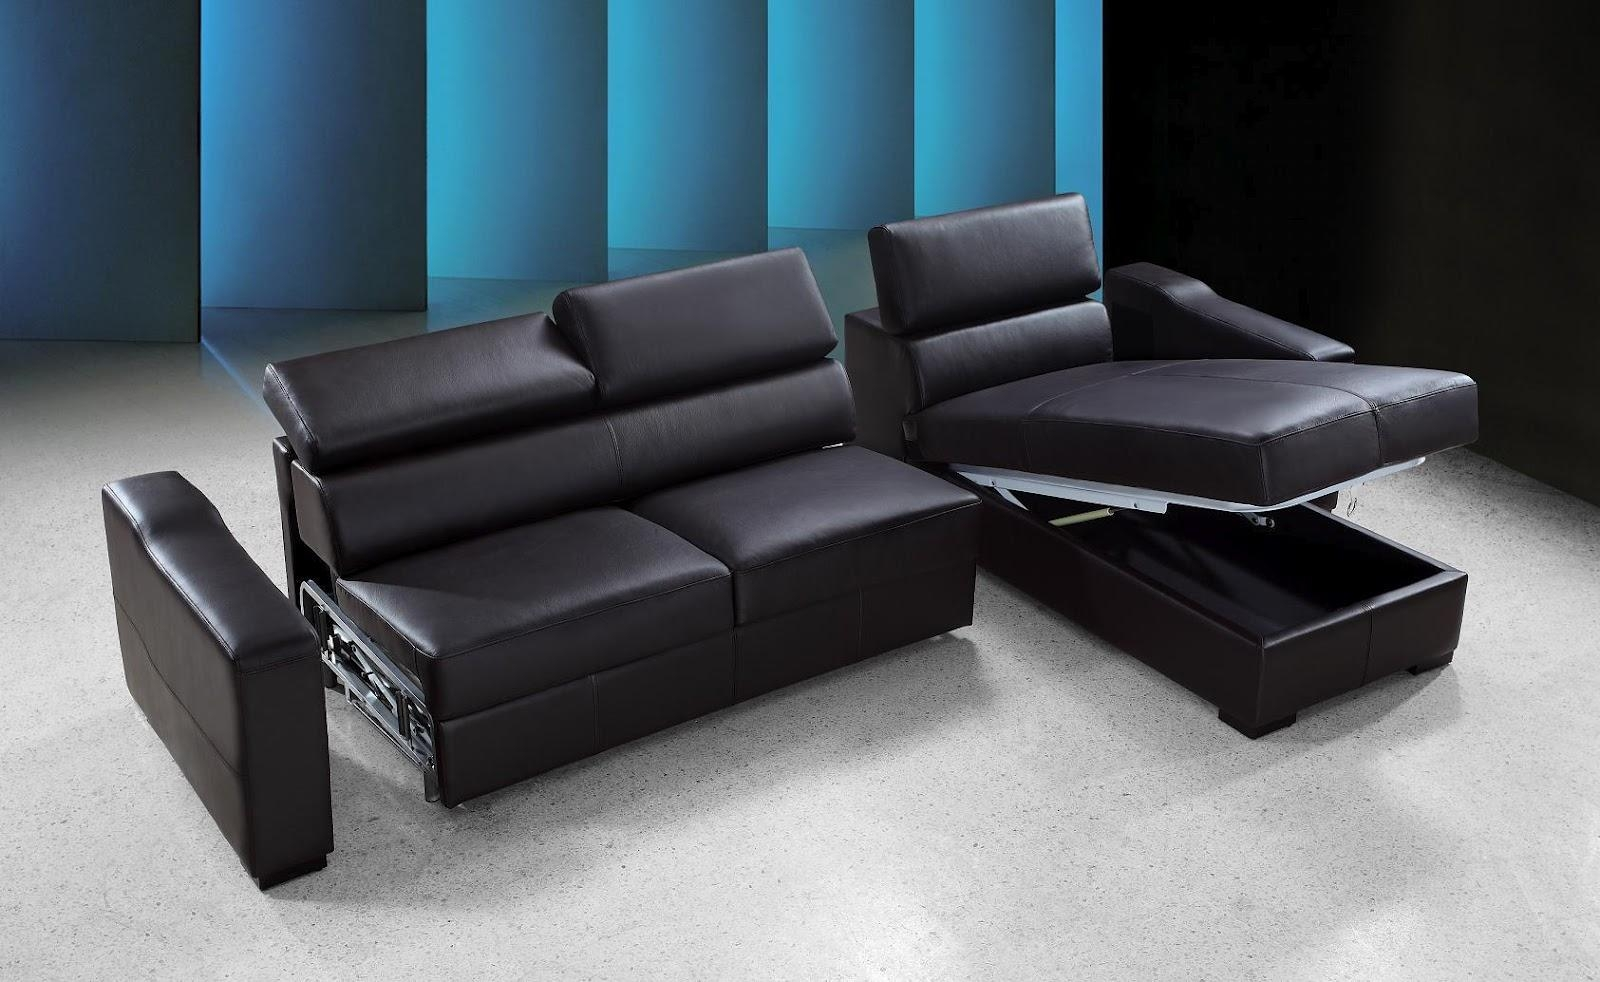 Furniture Home : Sofa Bed Sleeper Interior Simple Design Sofa Bed Inside Sofa Bed Chairs (Image 7 of 20)